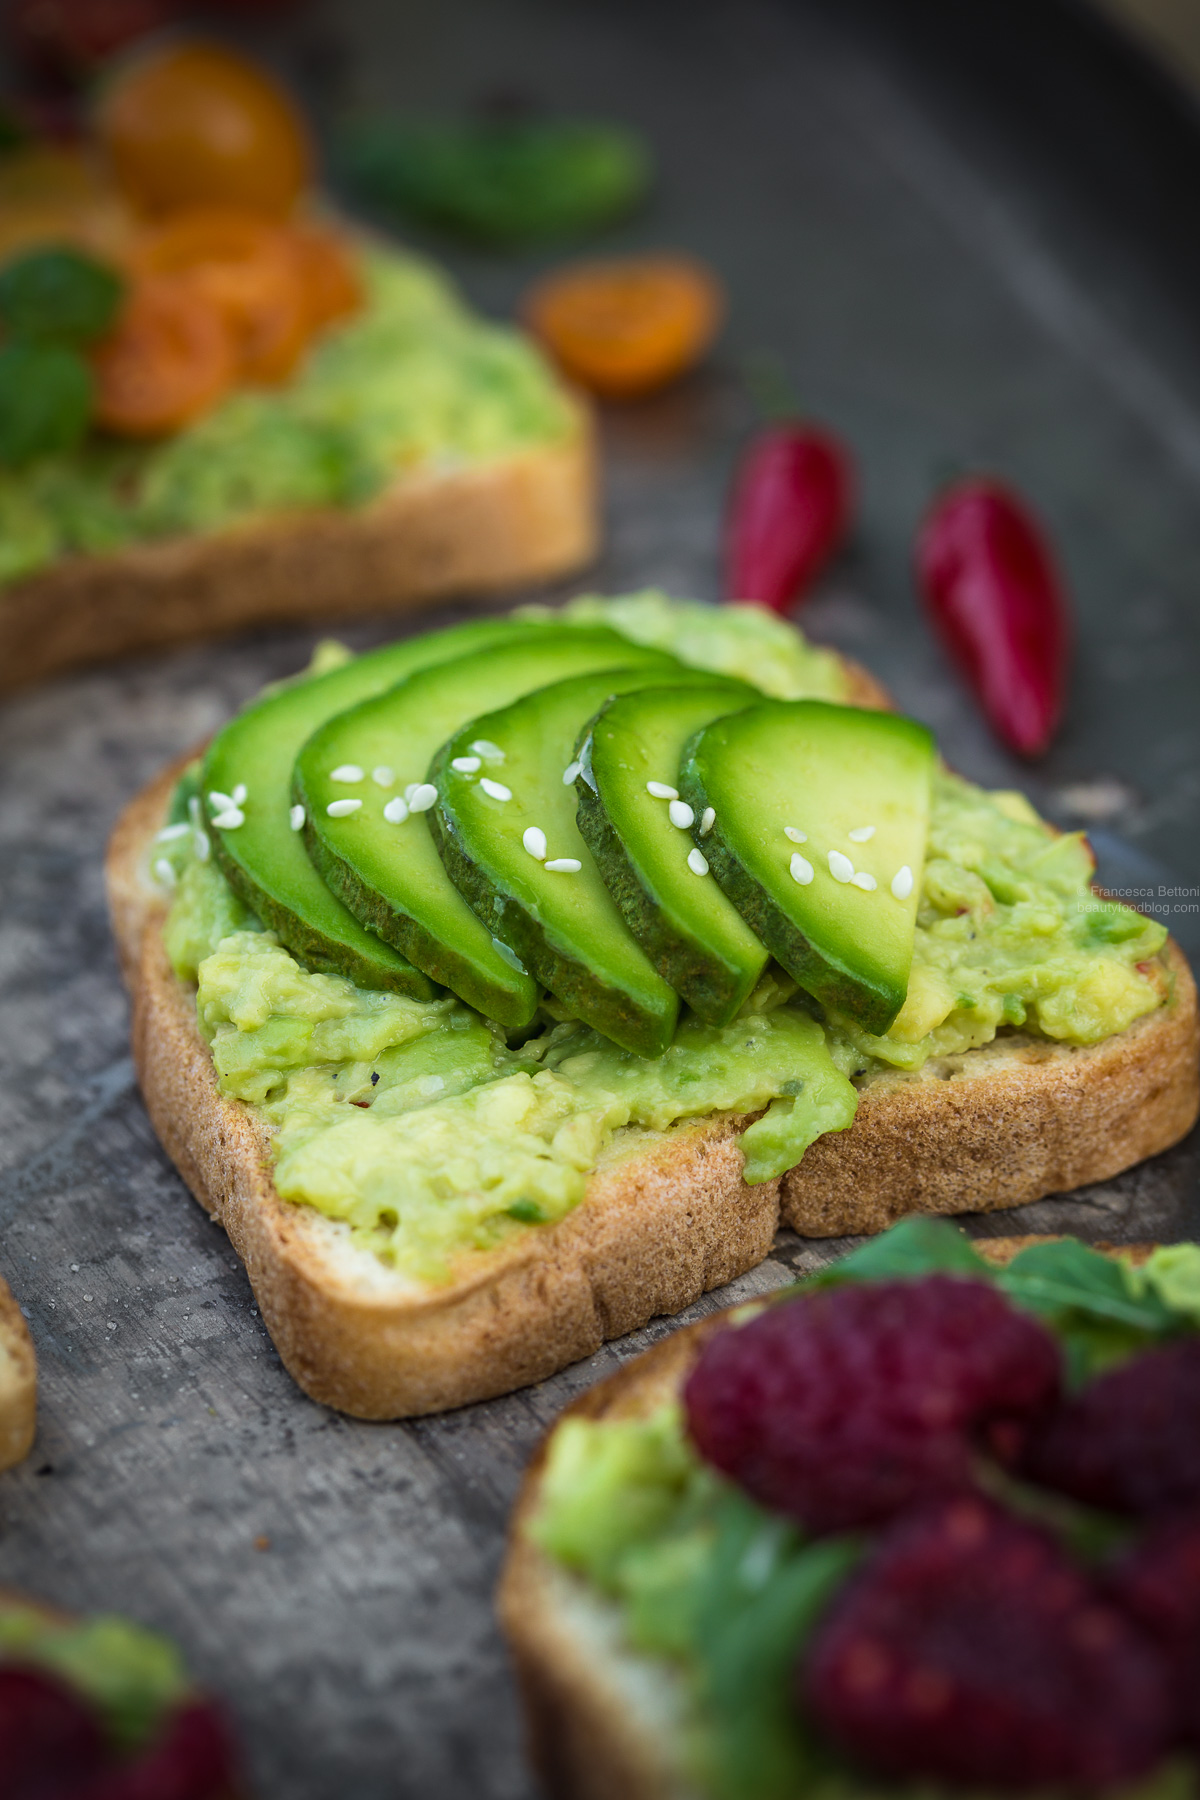 vegan glutenfree avocado toast recipe with sesame seeds ricetta avocado toast vegan senza glutine